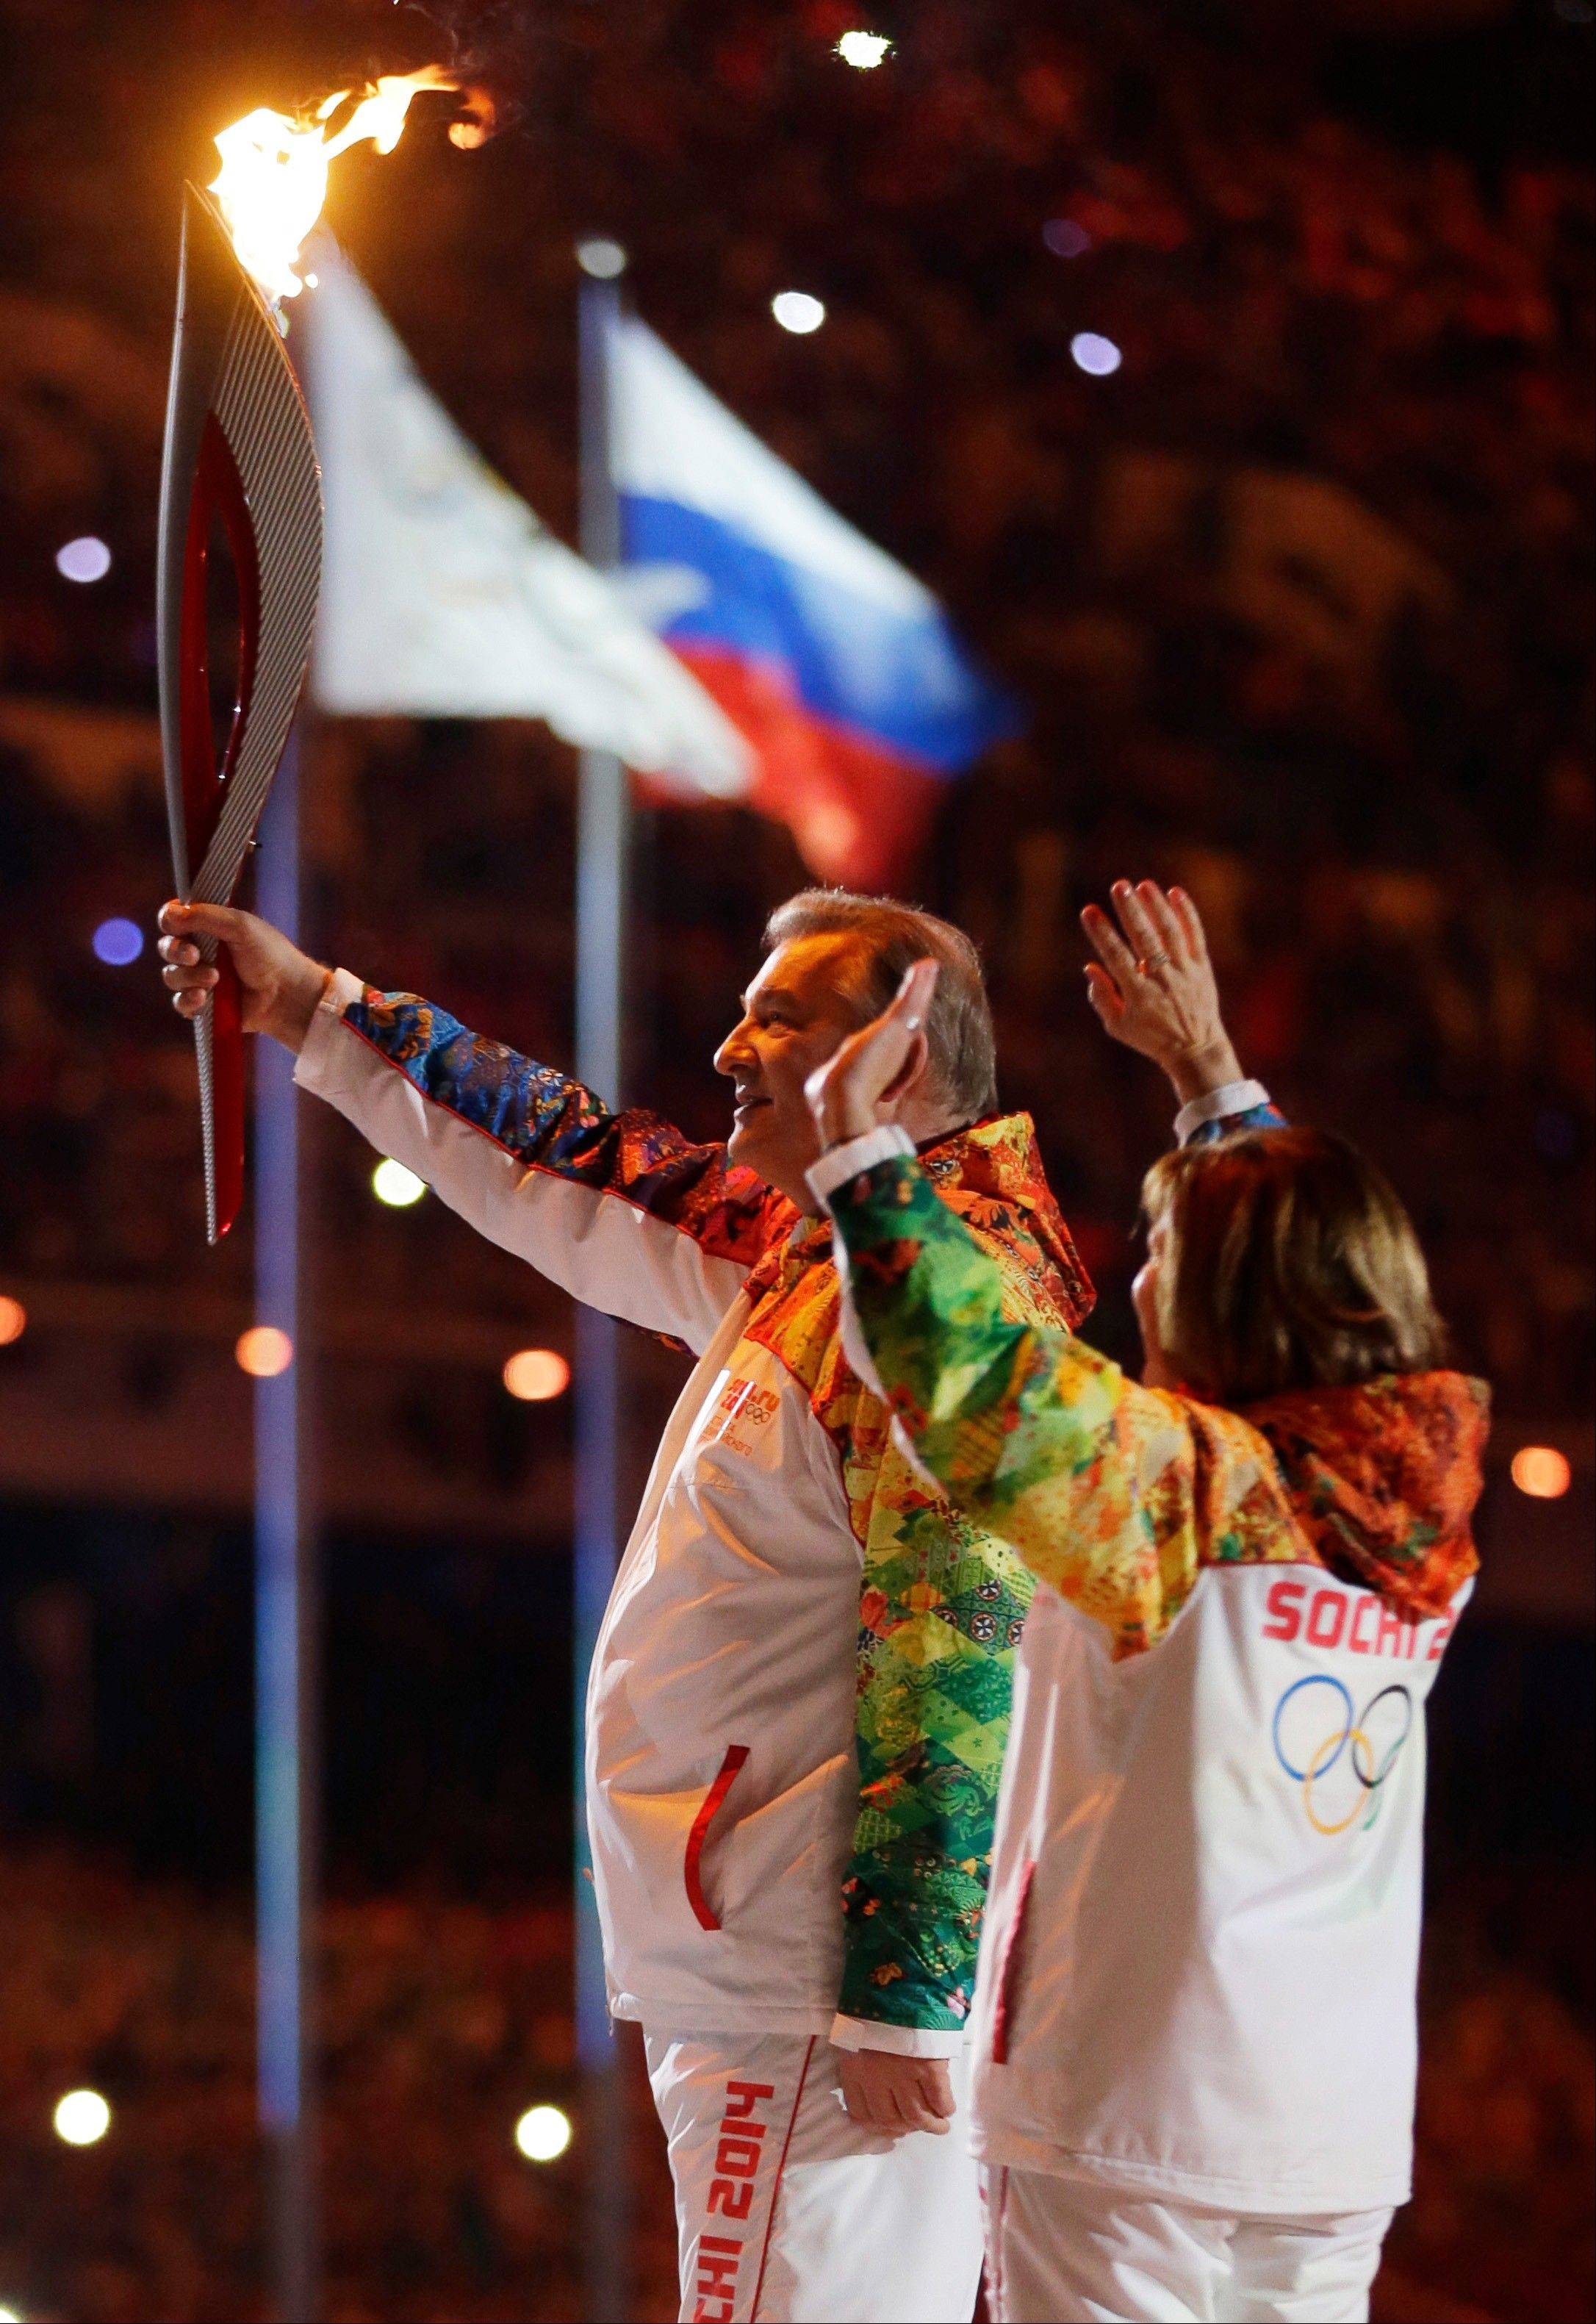 Vladsilav Tretyak holds the torch during the opening ceremony.